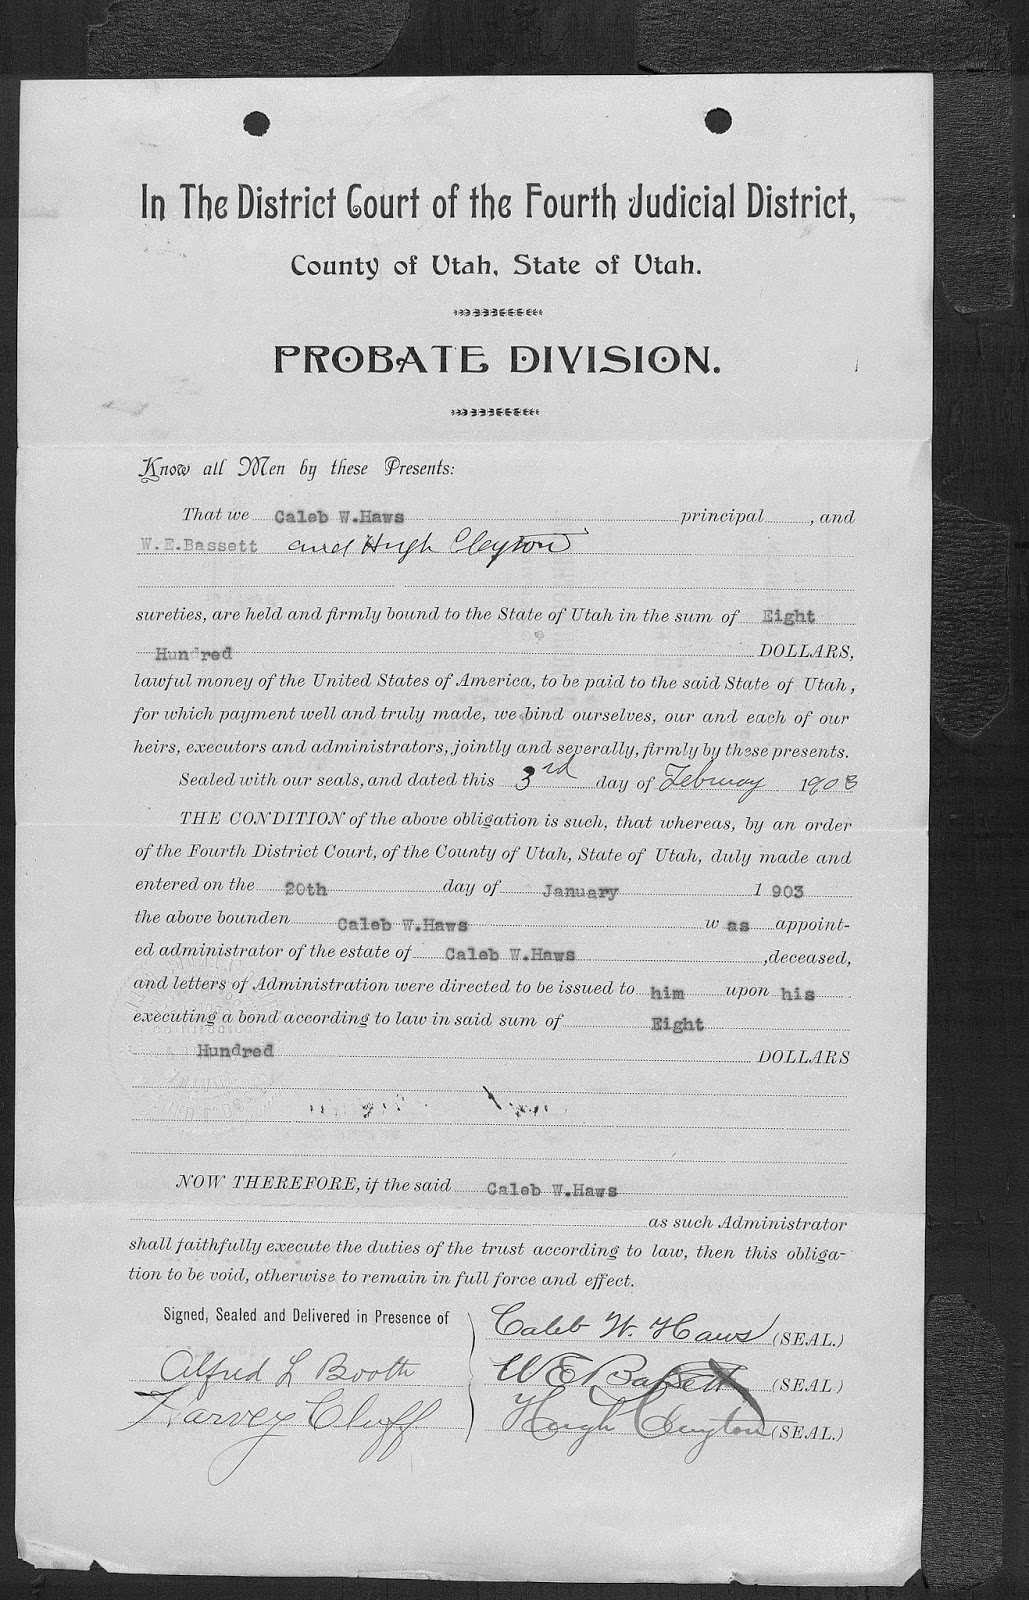 grant of letters of administration application form Letters of administration also known as grant of letters of administration is probate where there is no will  an application for the letters of administration.